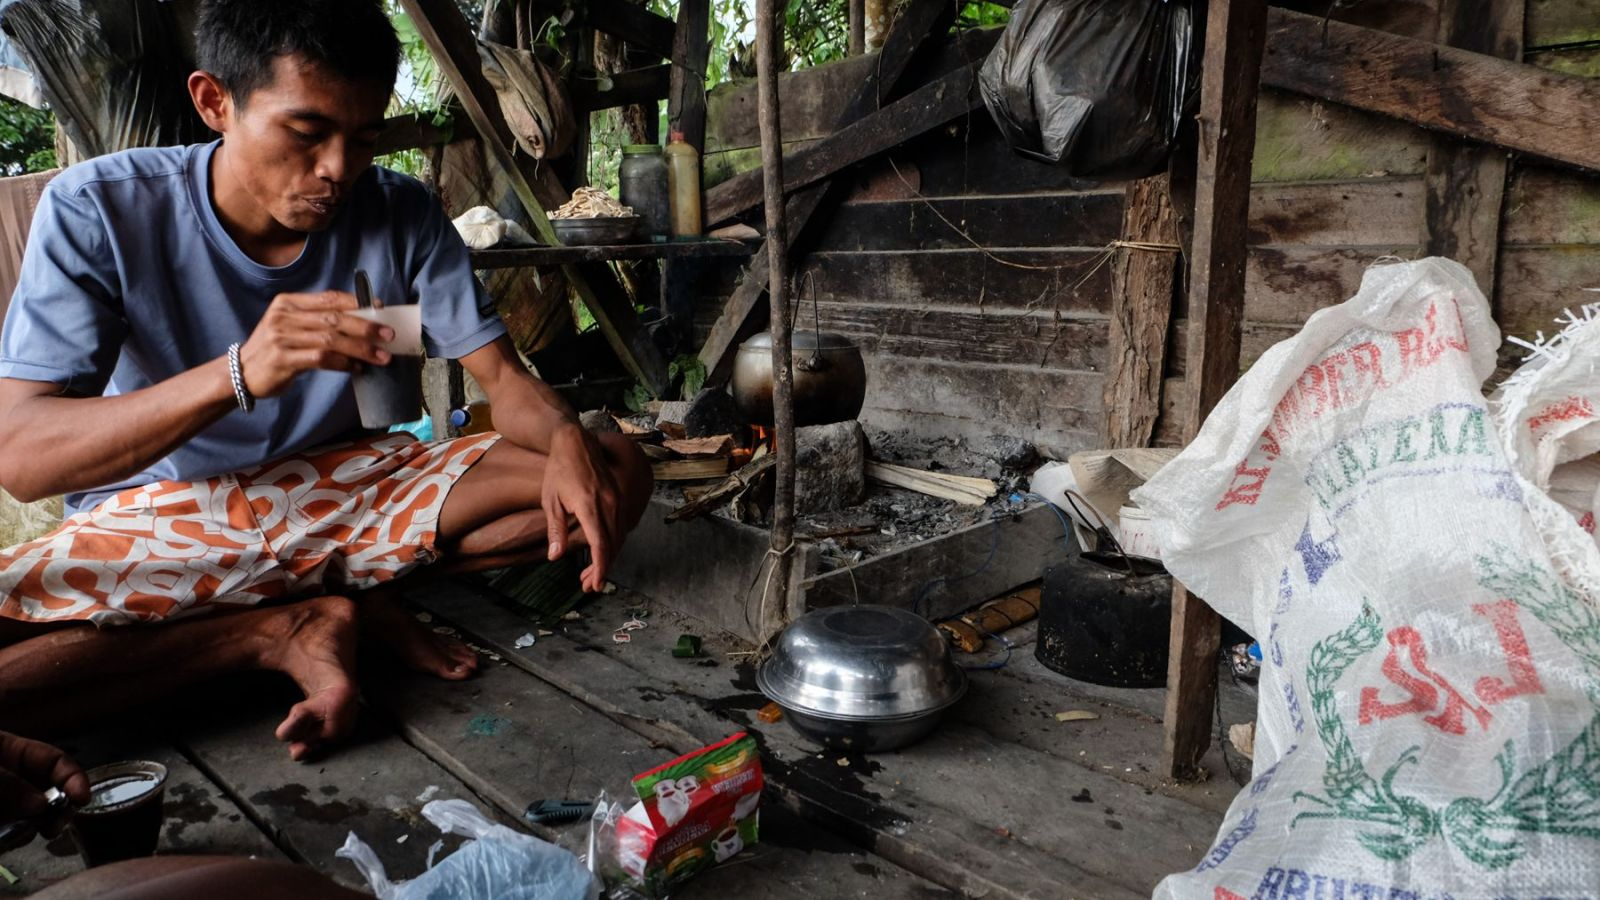 photo of a former rebel hut in gunung leuser national park and a person preparing food.